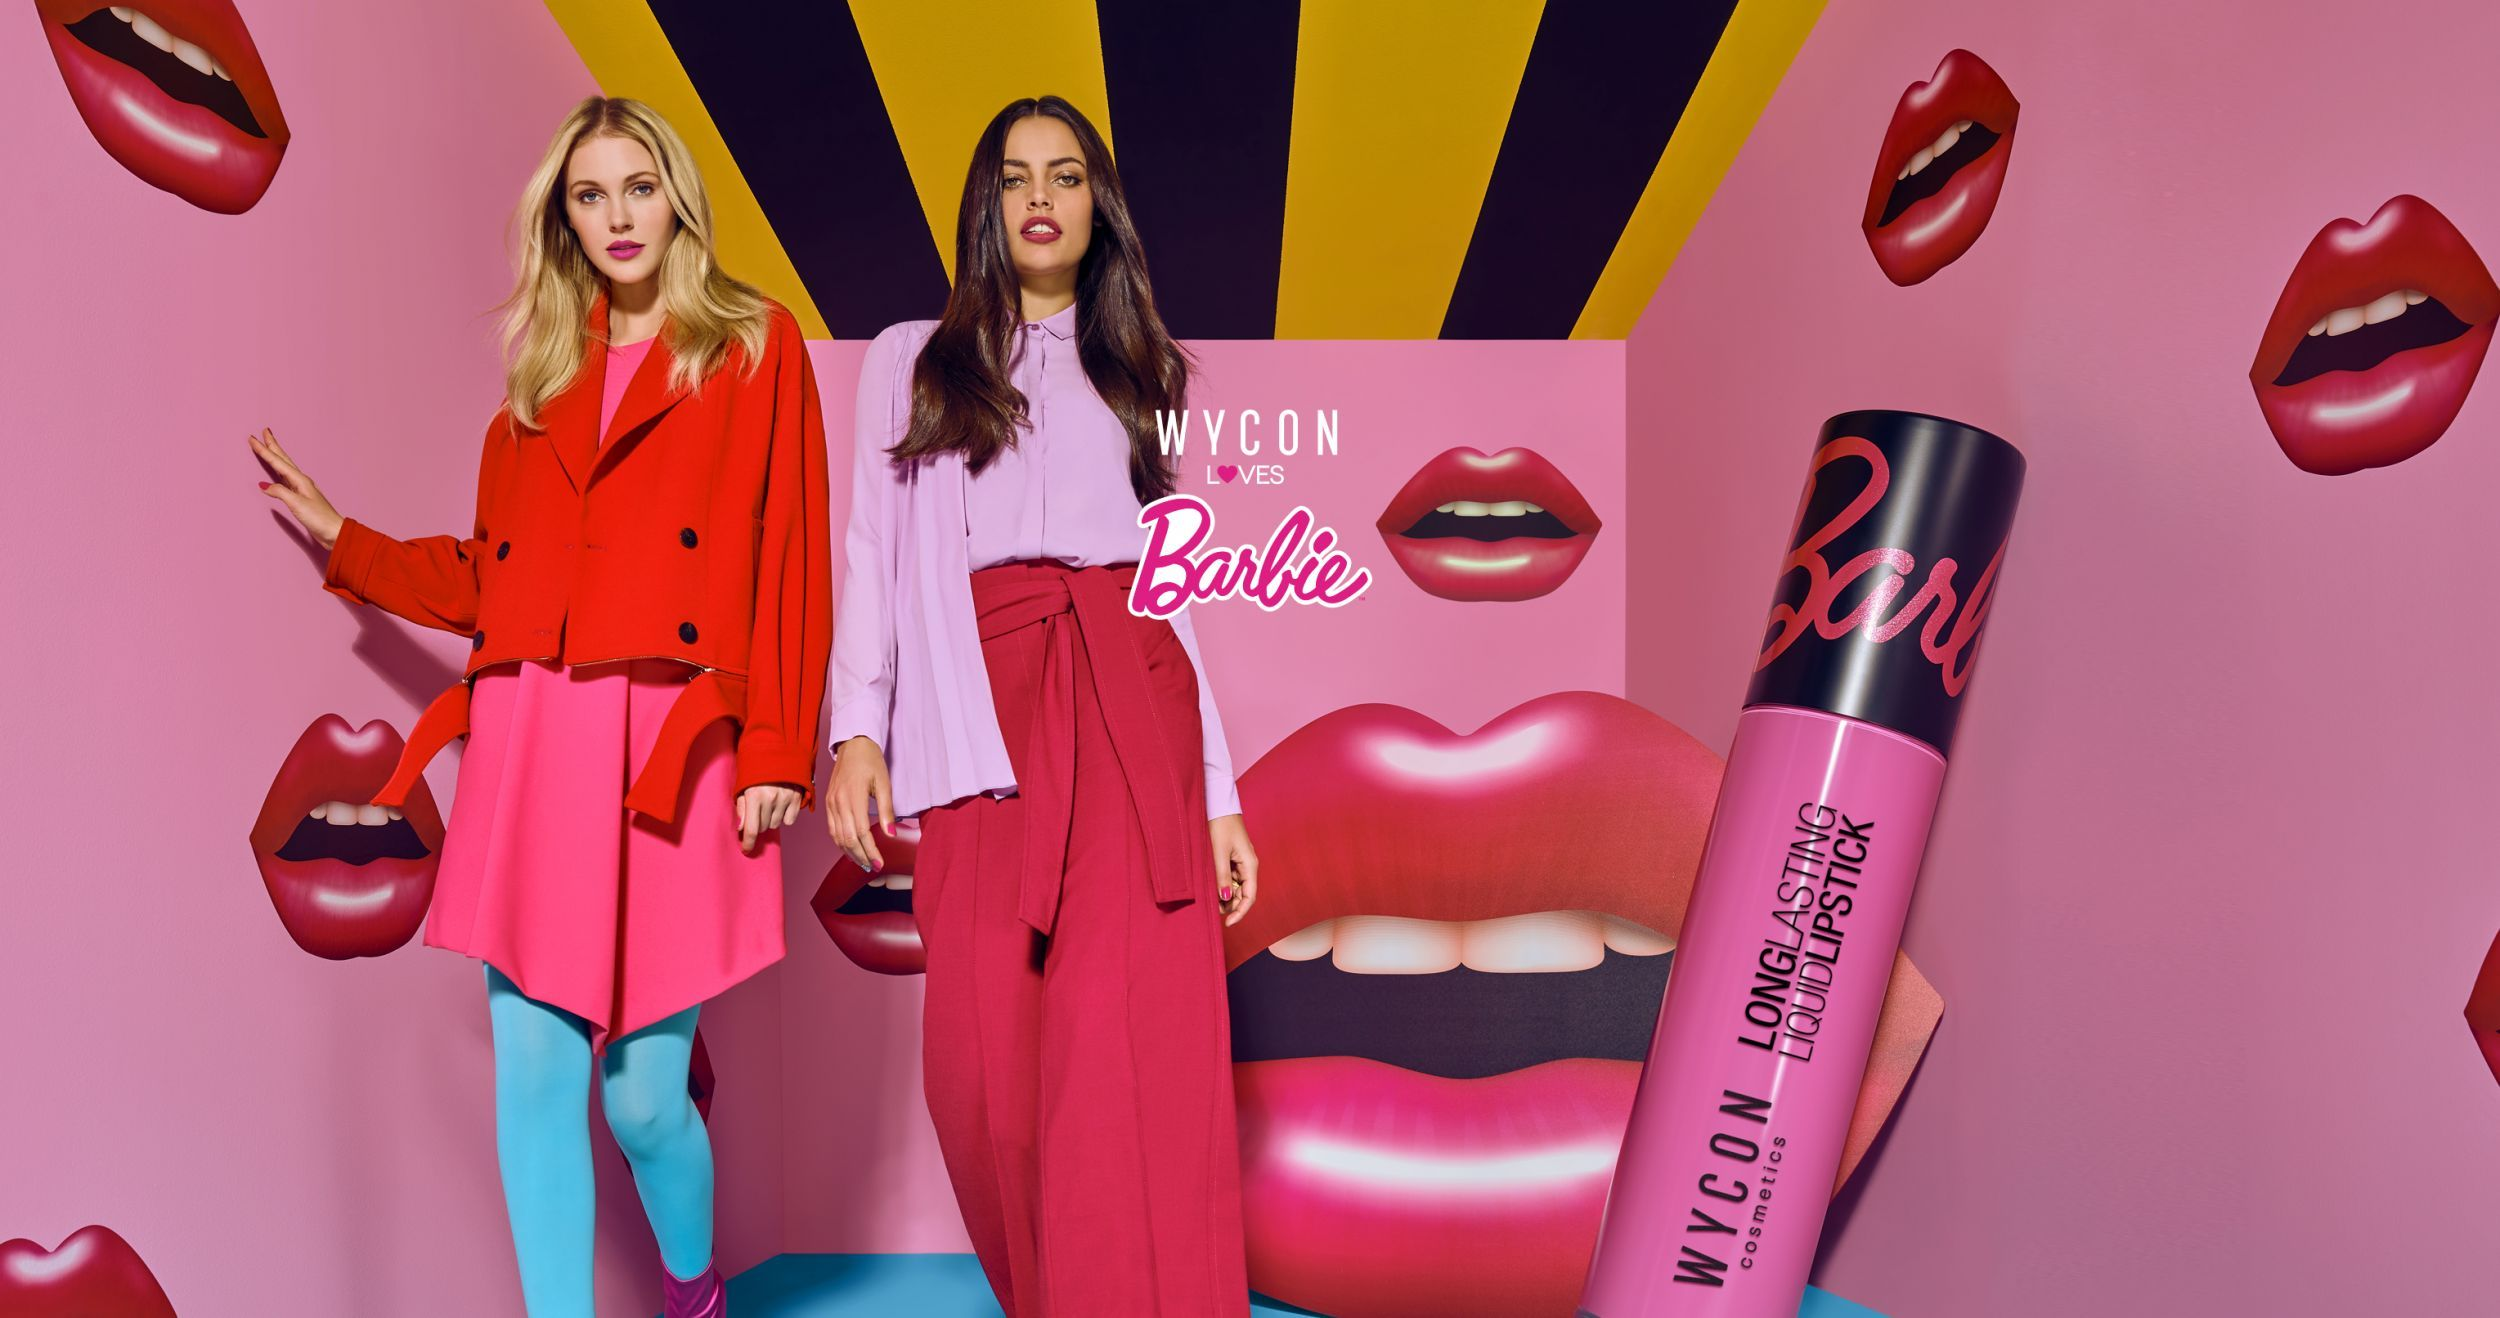 WYCON loves BARBIE  liquid lipstick collection